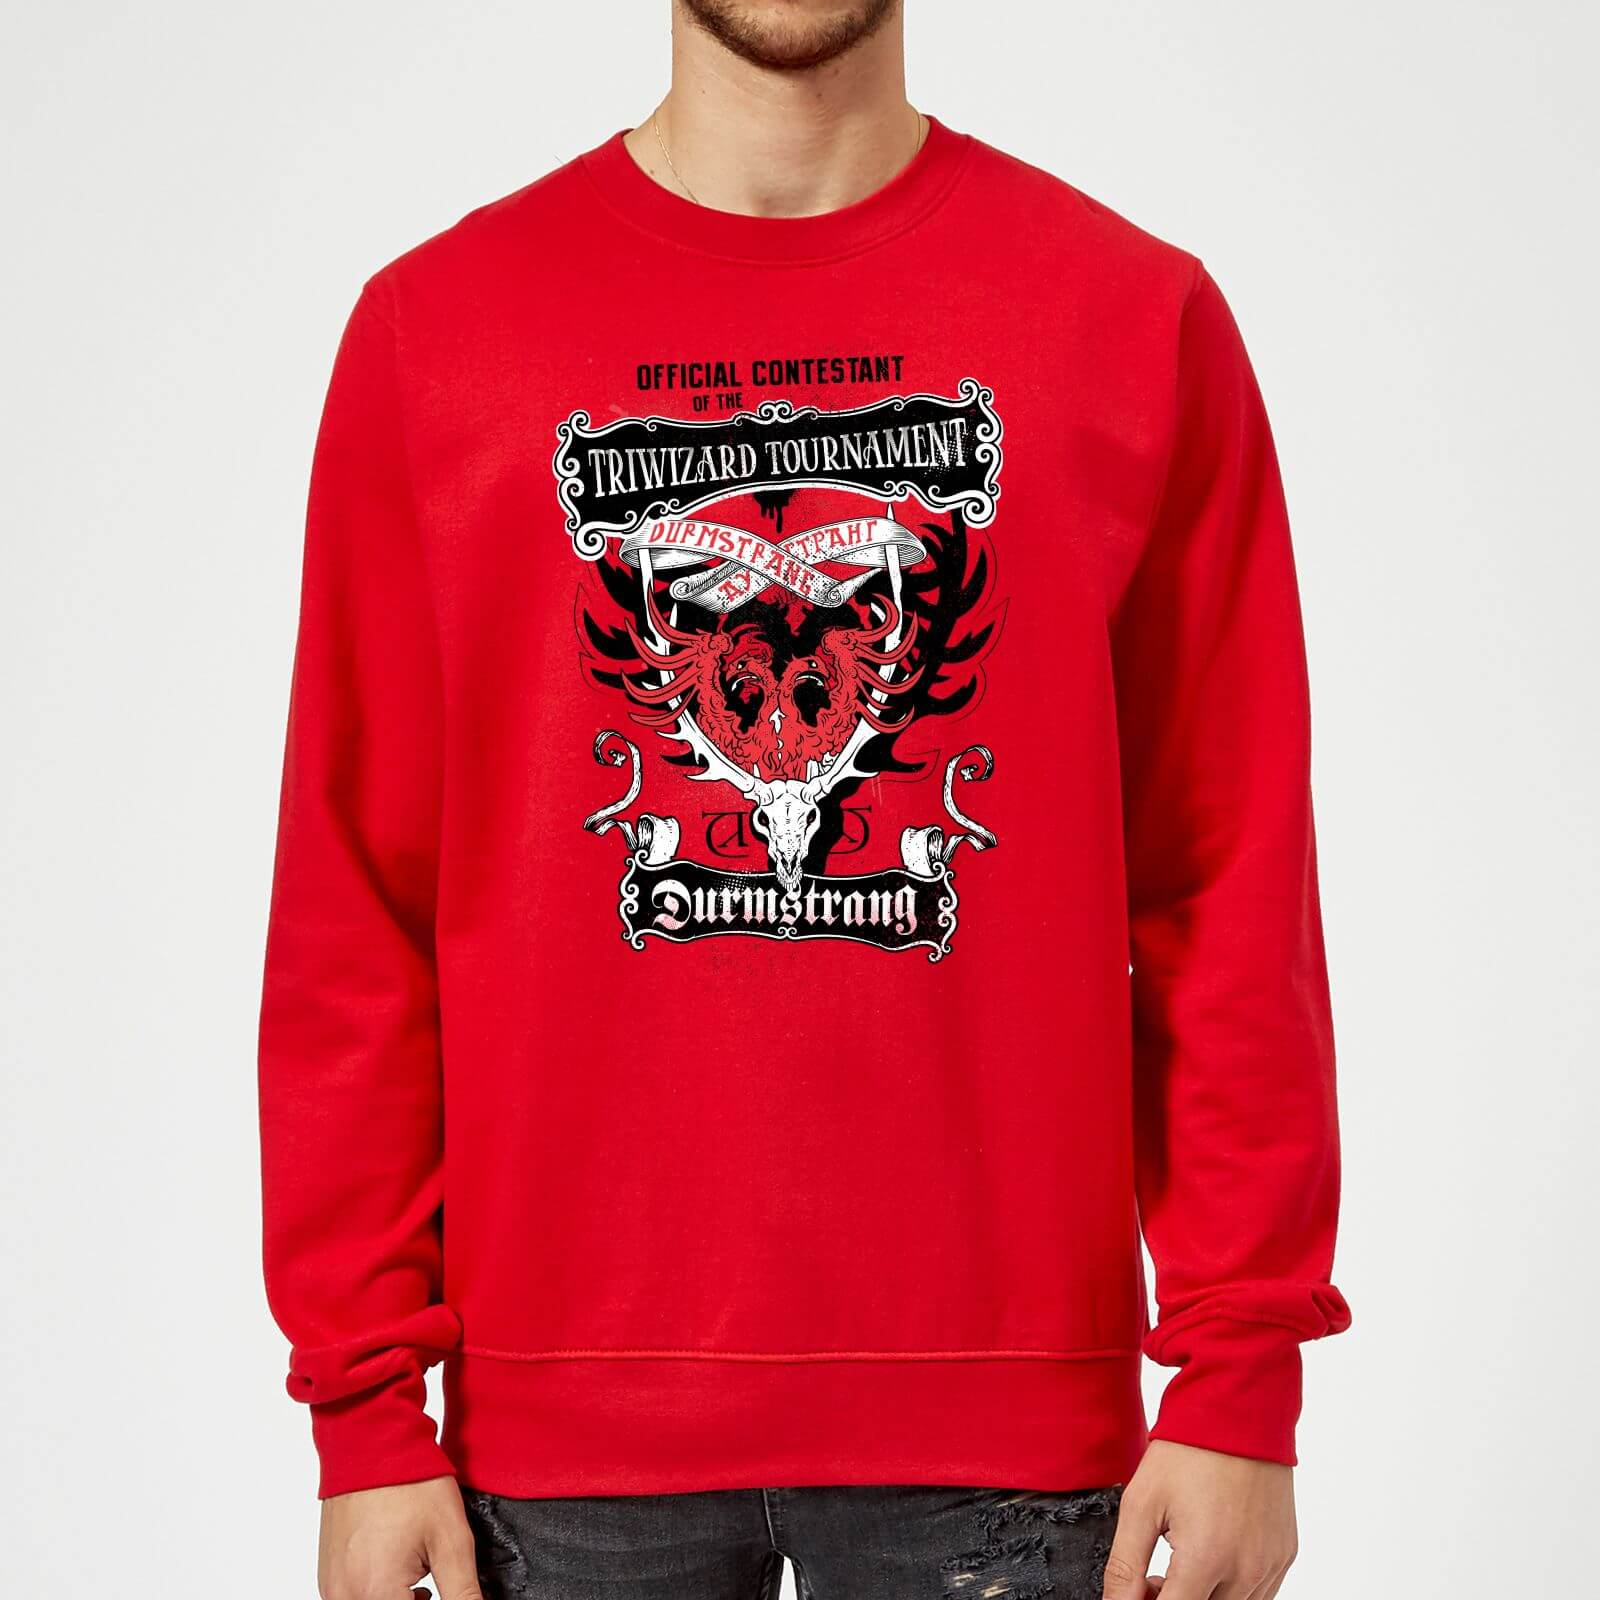 Harry Potter Triwizard Tournament Durmstrang Sweatshirt Red My Geek Box Us The triwizard tournament is a famous contest between three schools: my geek box